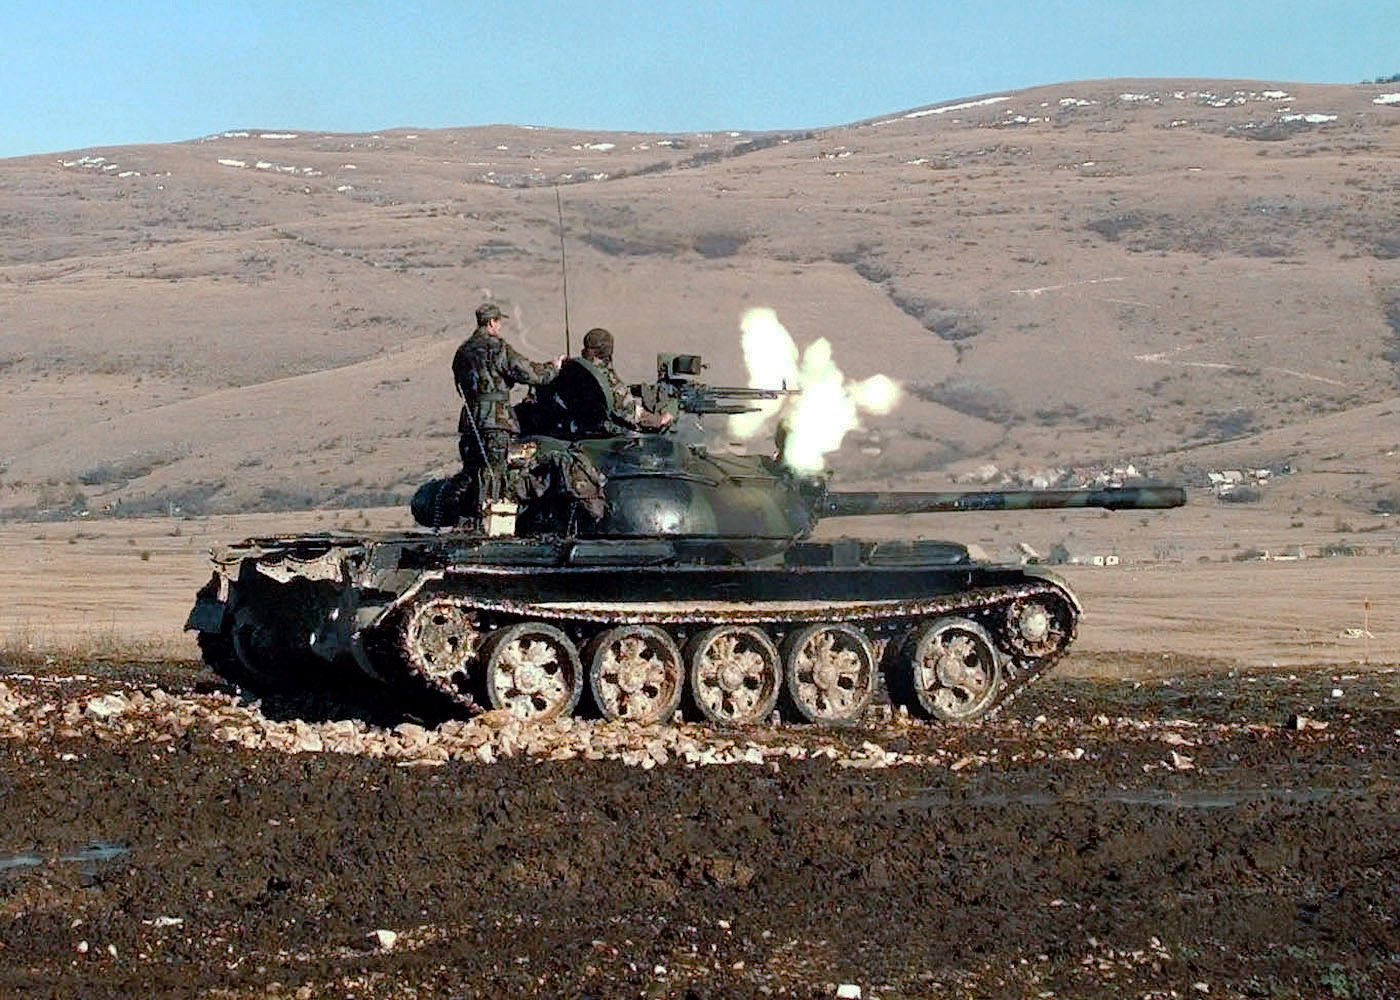 HVO Army T-55 Glamoc firing MG